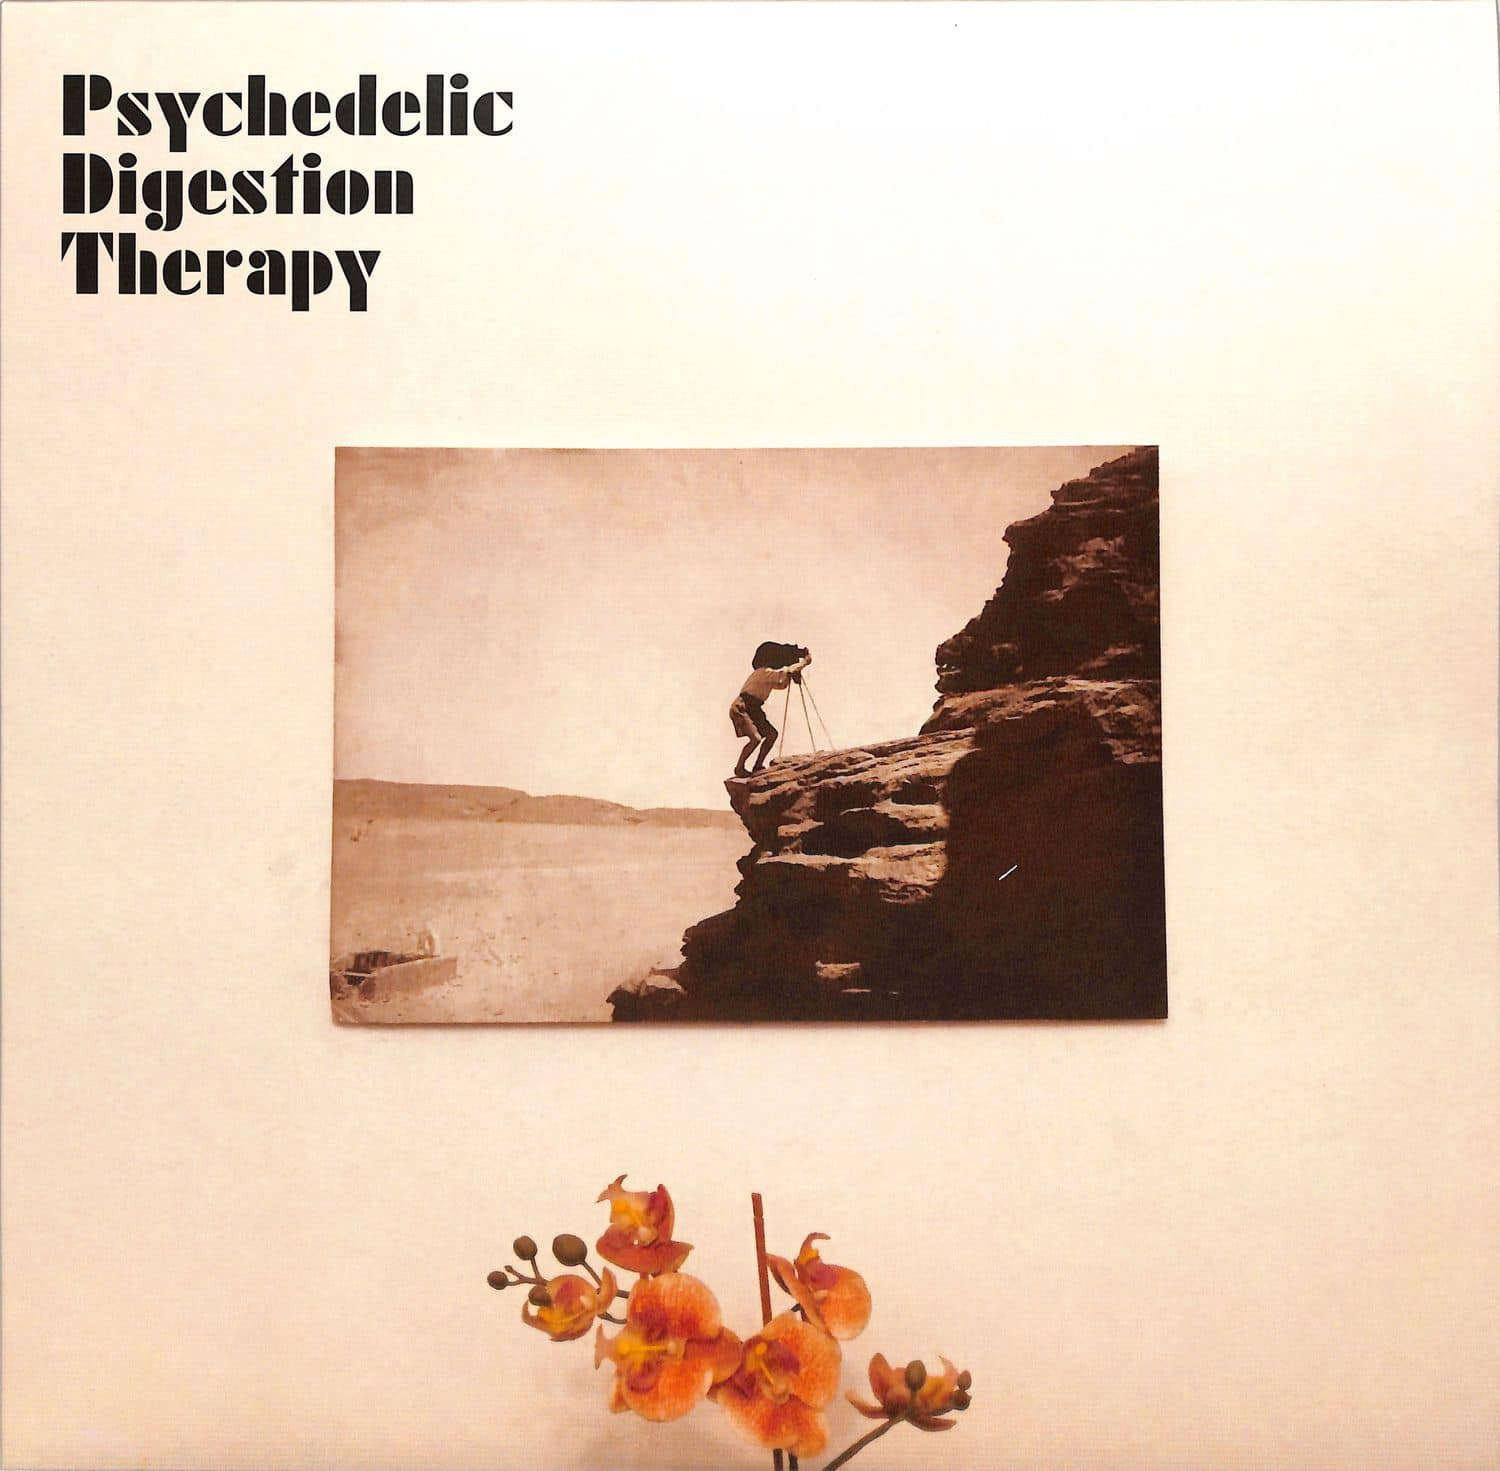 Psychedelic Digestion Therapy - PSYCHEDELIC DIGESTION THERAPY